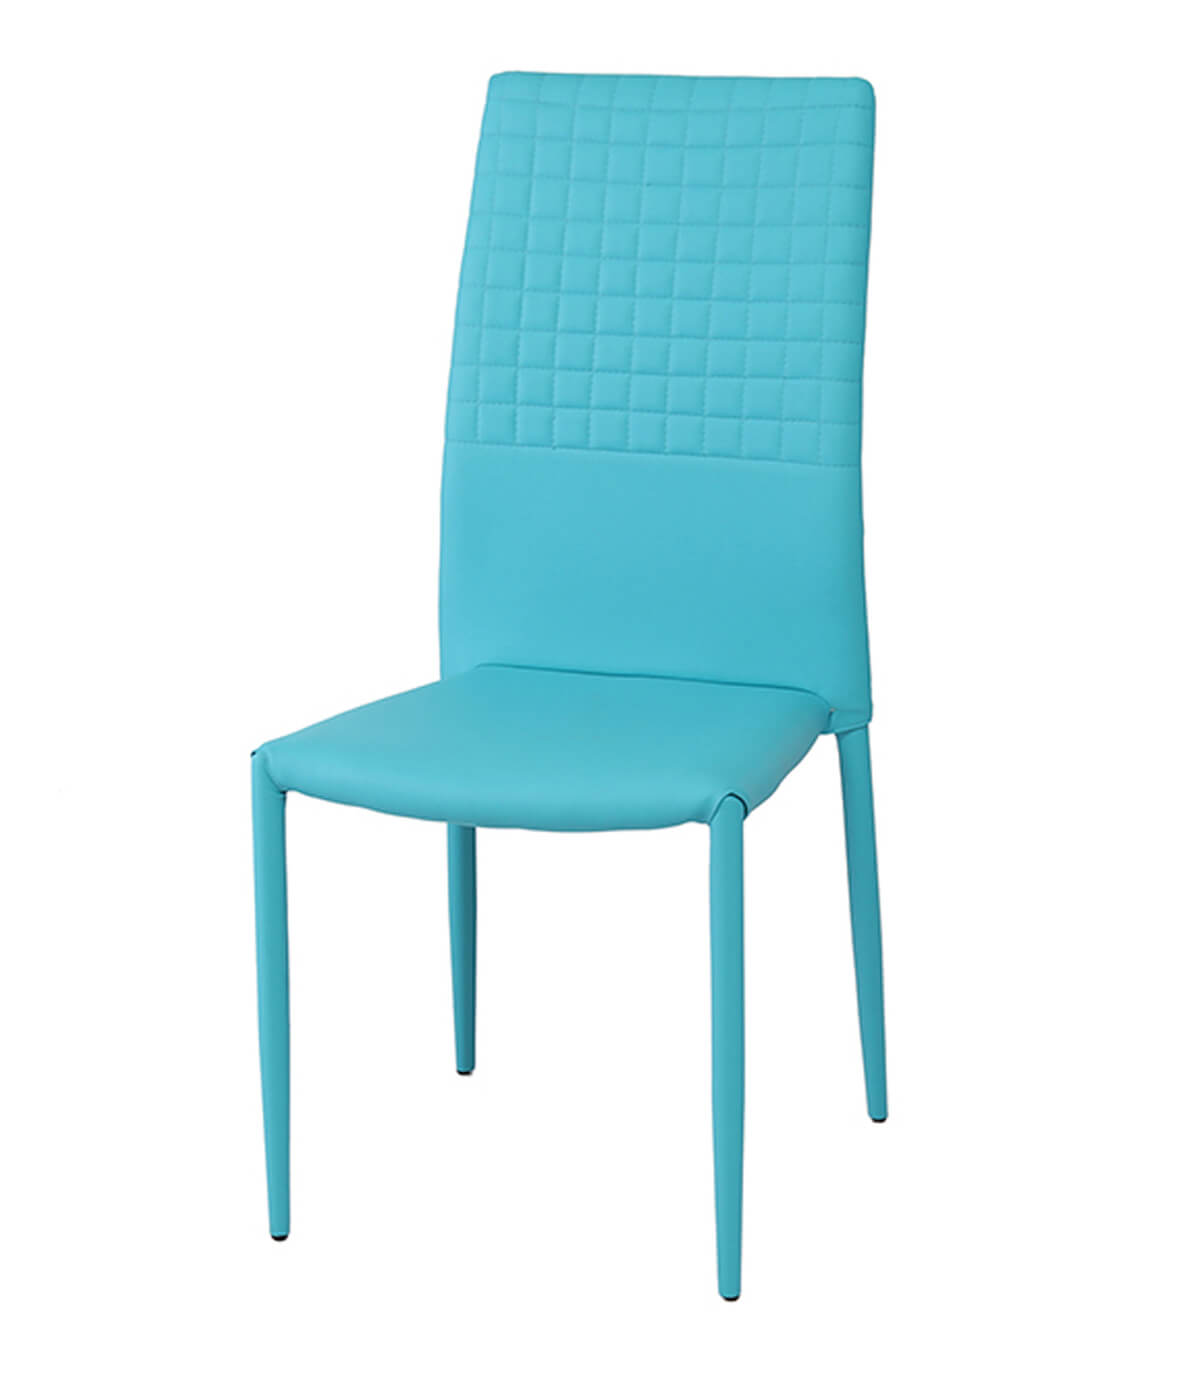 Cuba Aqua Blue Modern Faux Leather Dining Chair